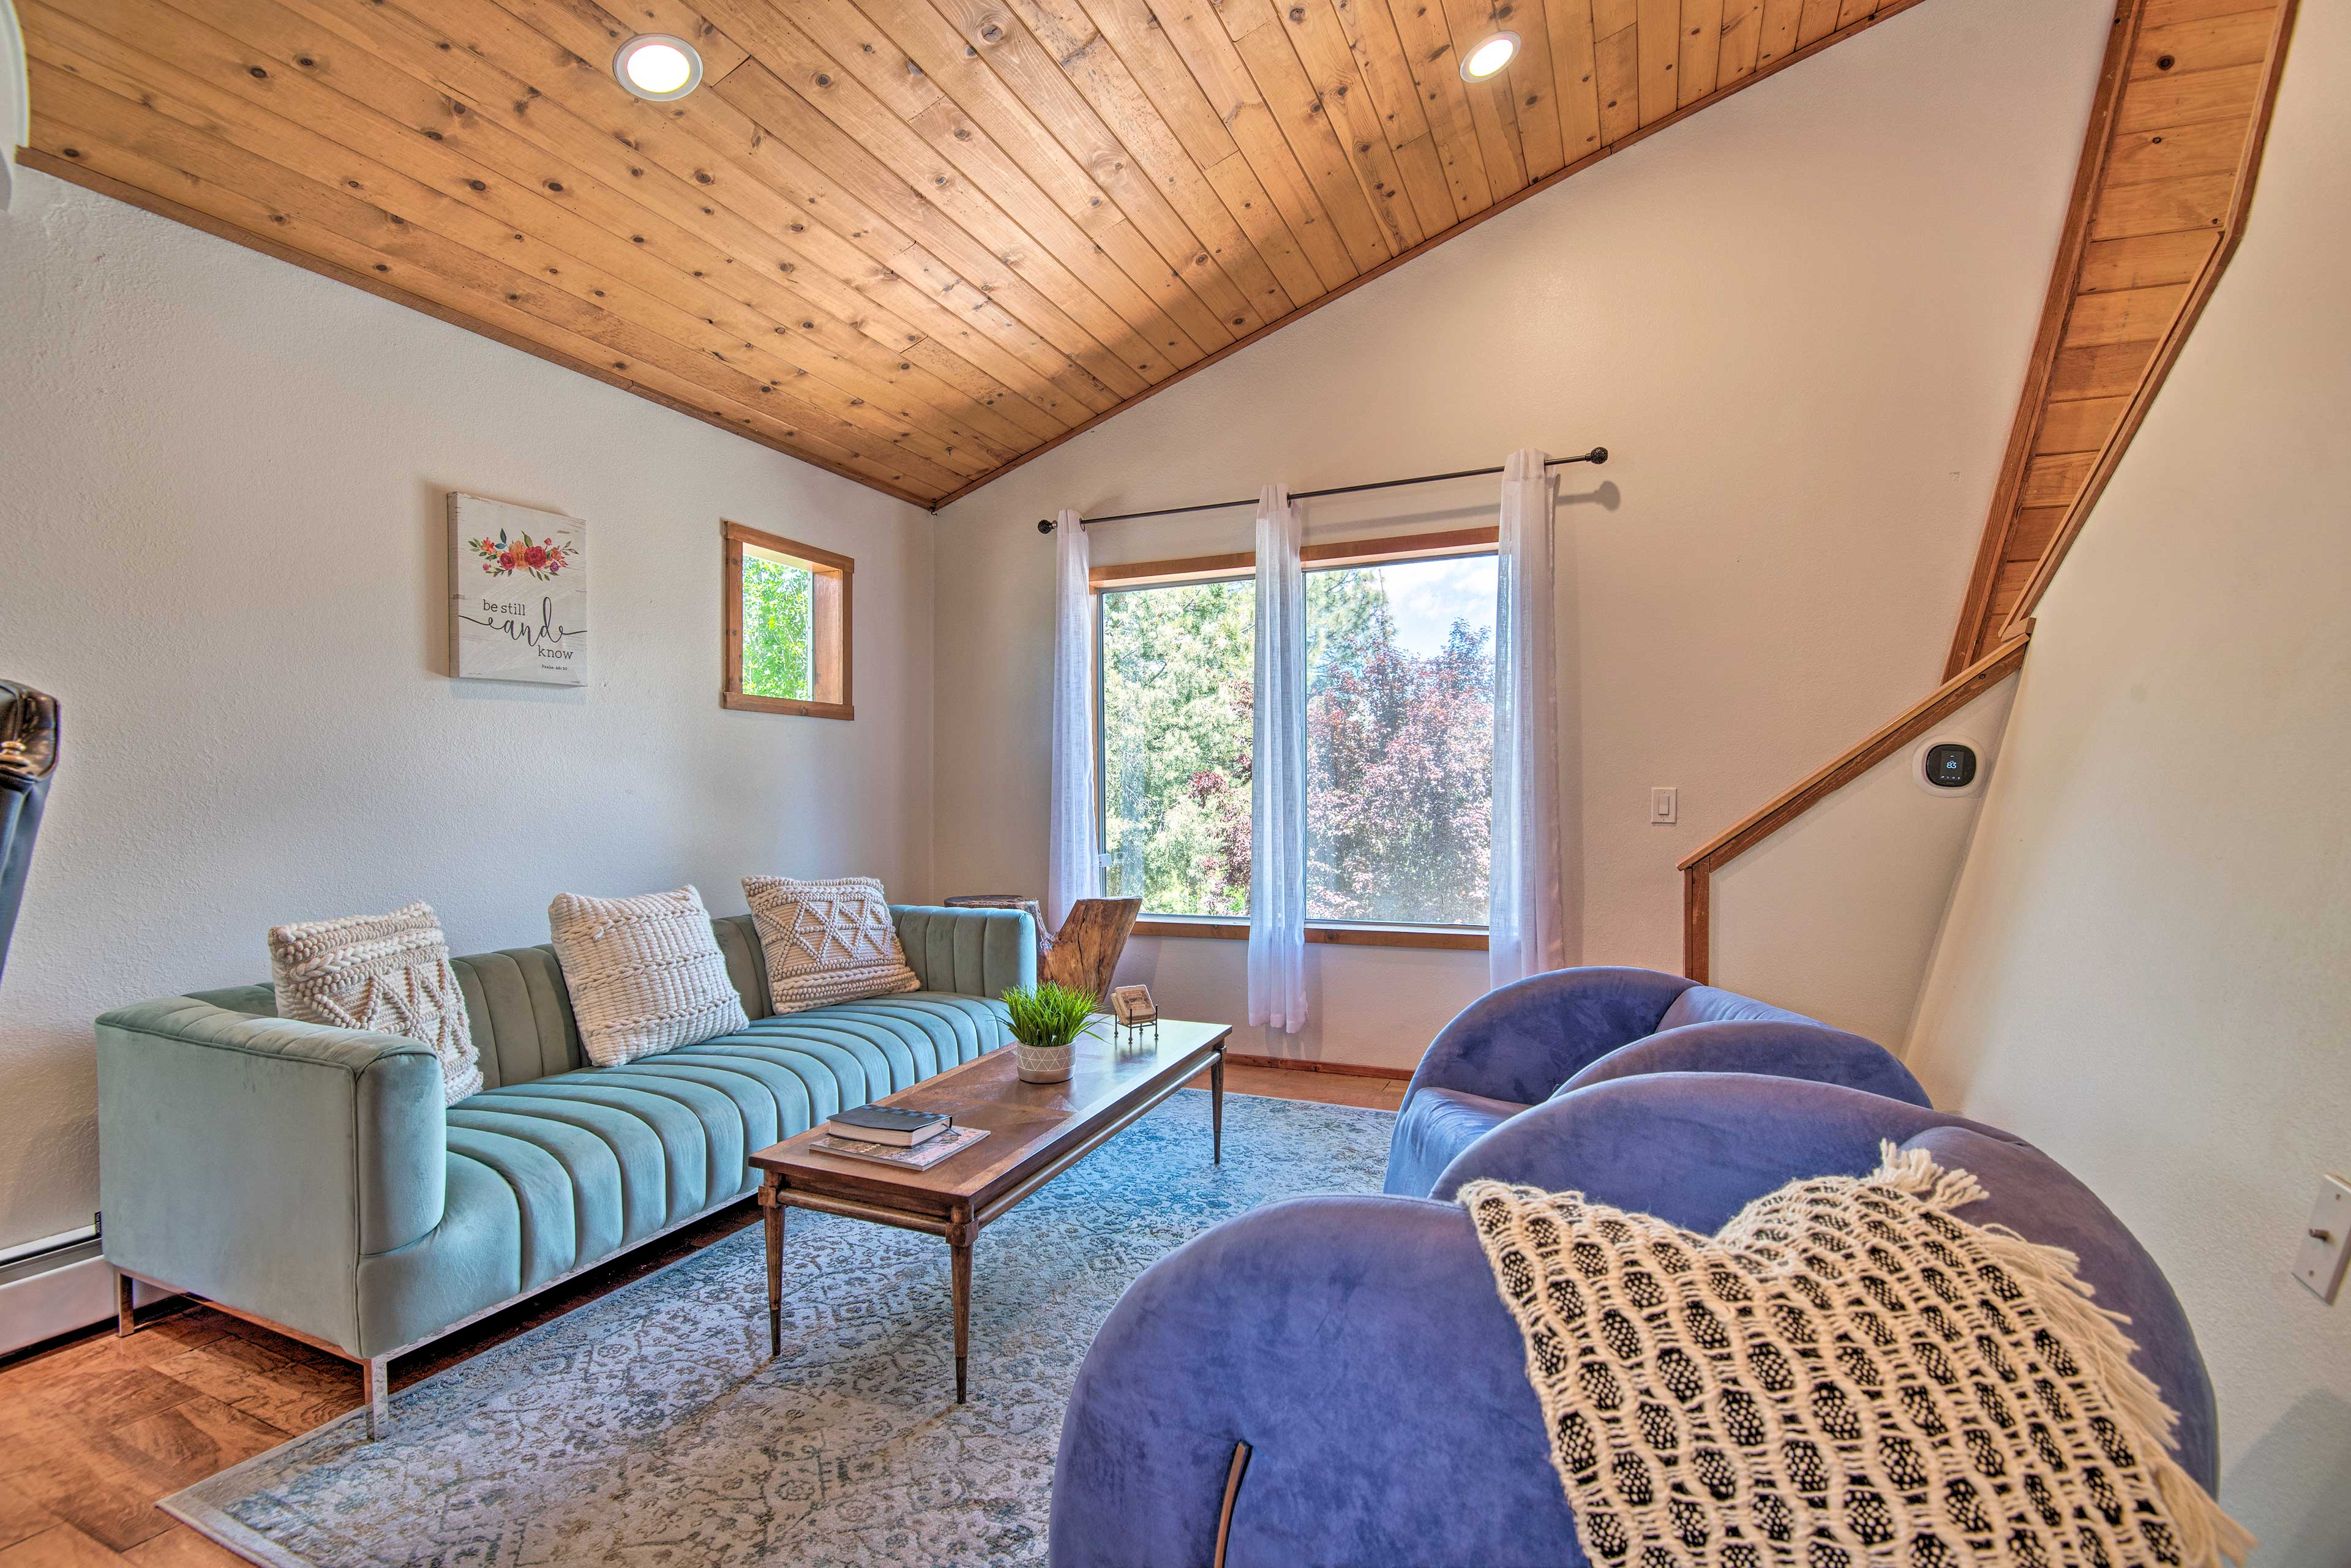 The second living area is a great place to hunker down with a good book.